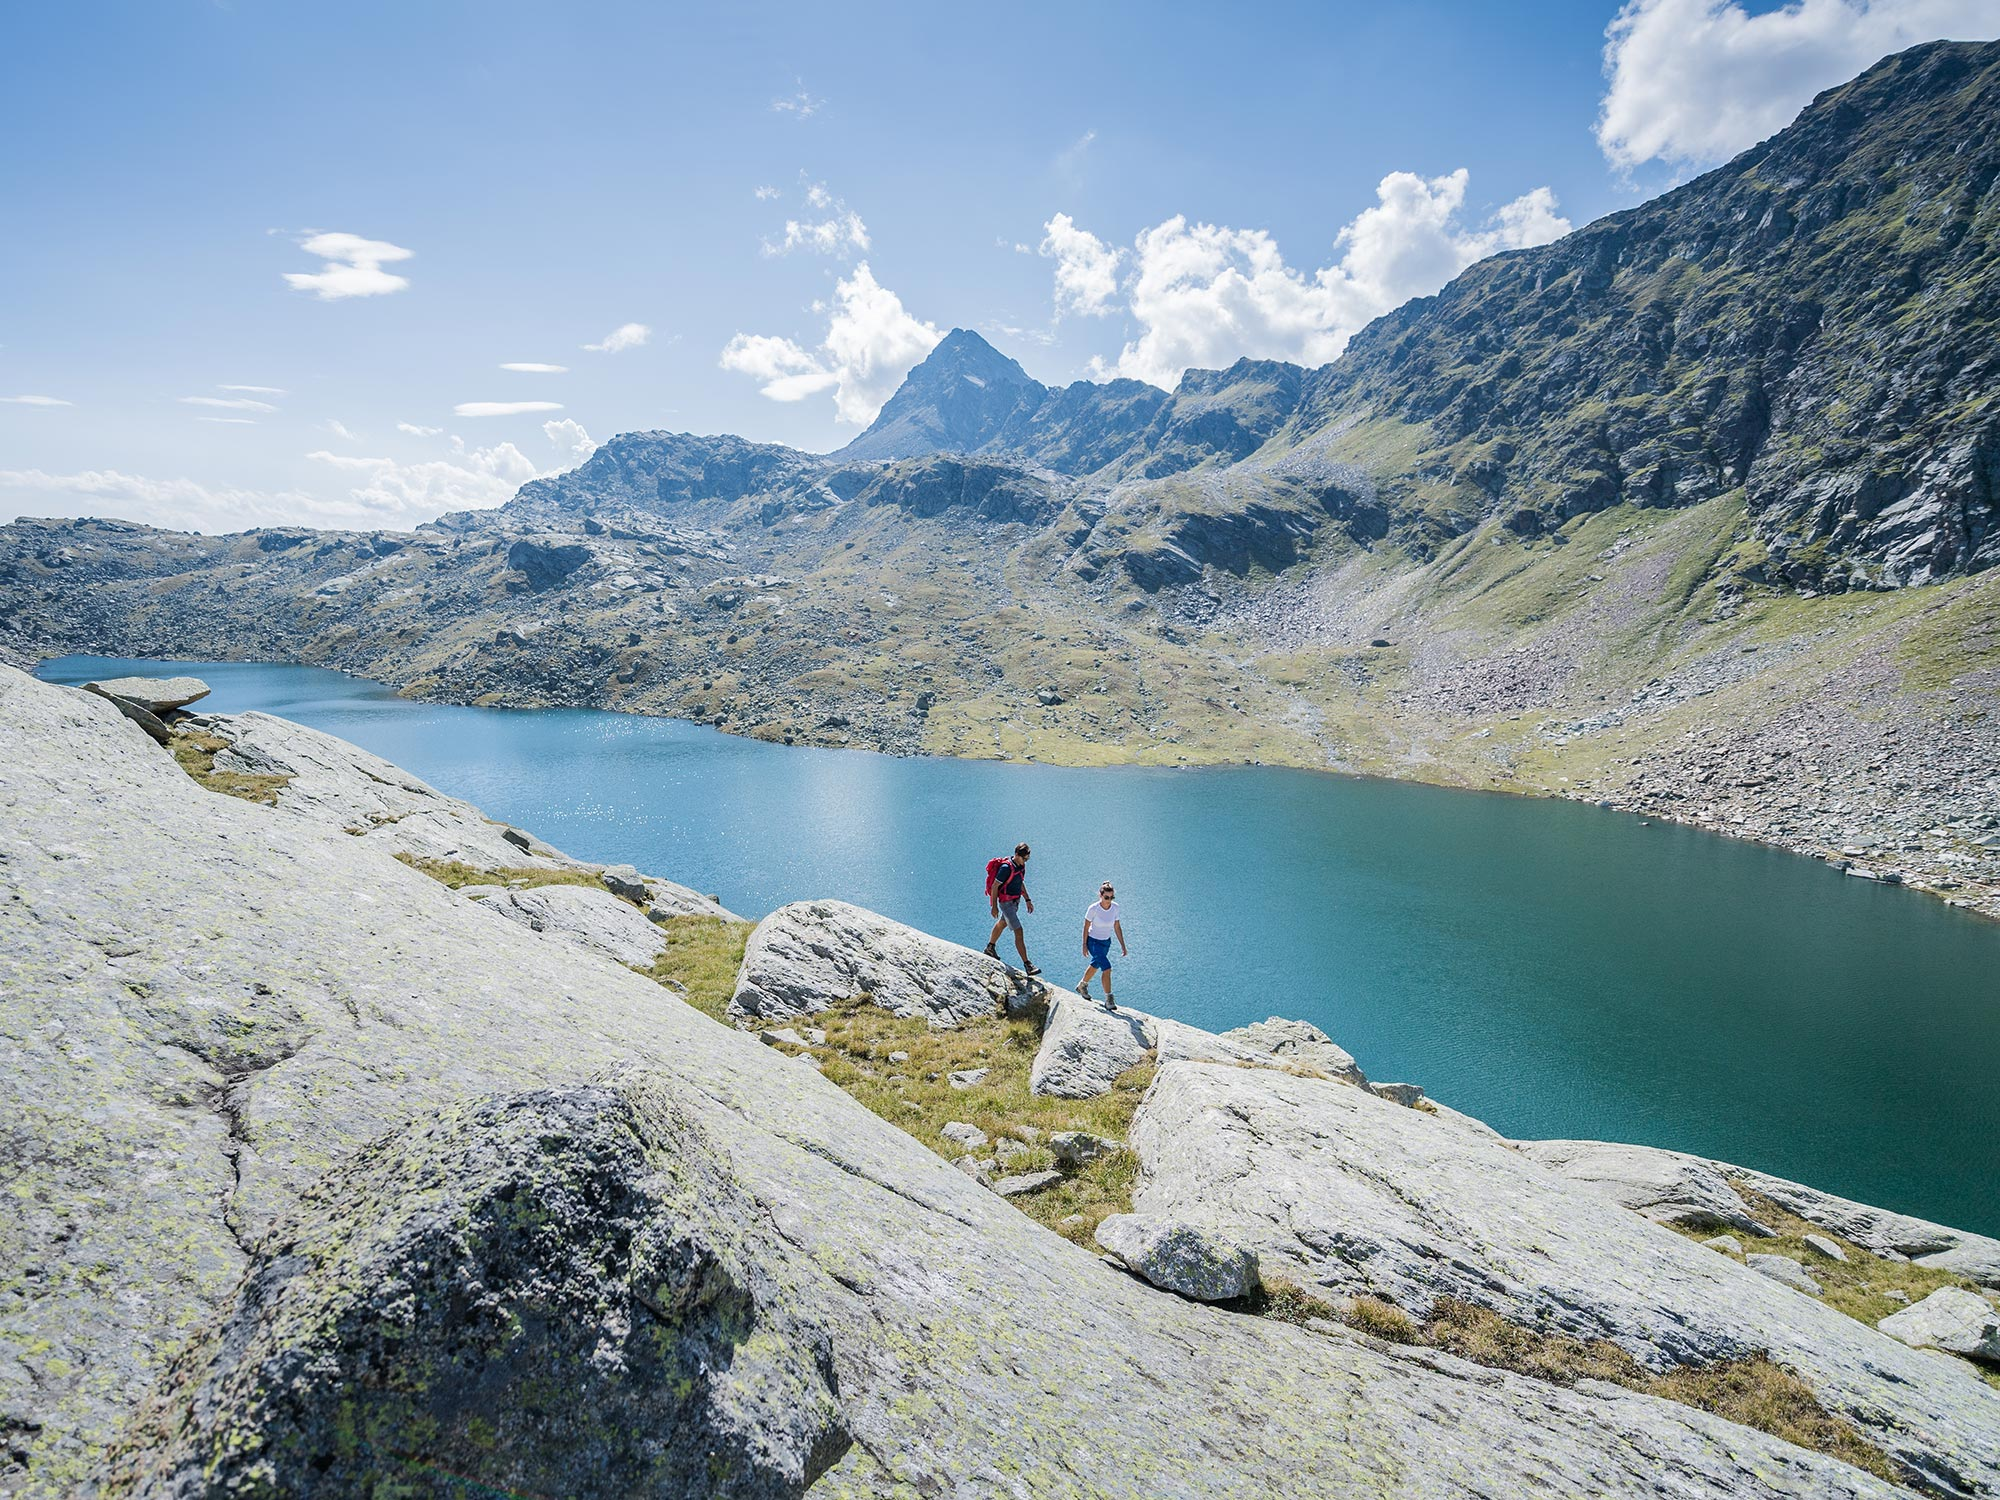 Spronser lakes in the Texel Group above Meran and Dorf Tirol